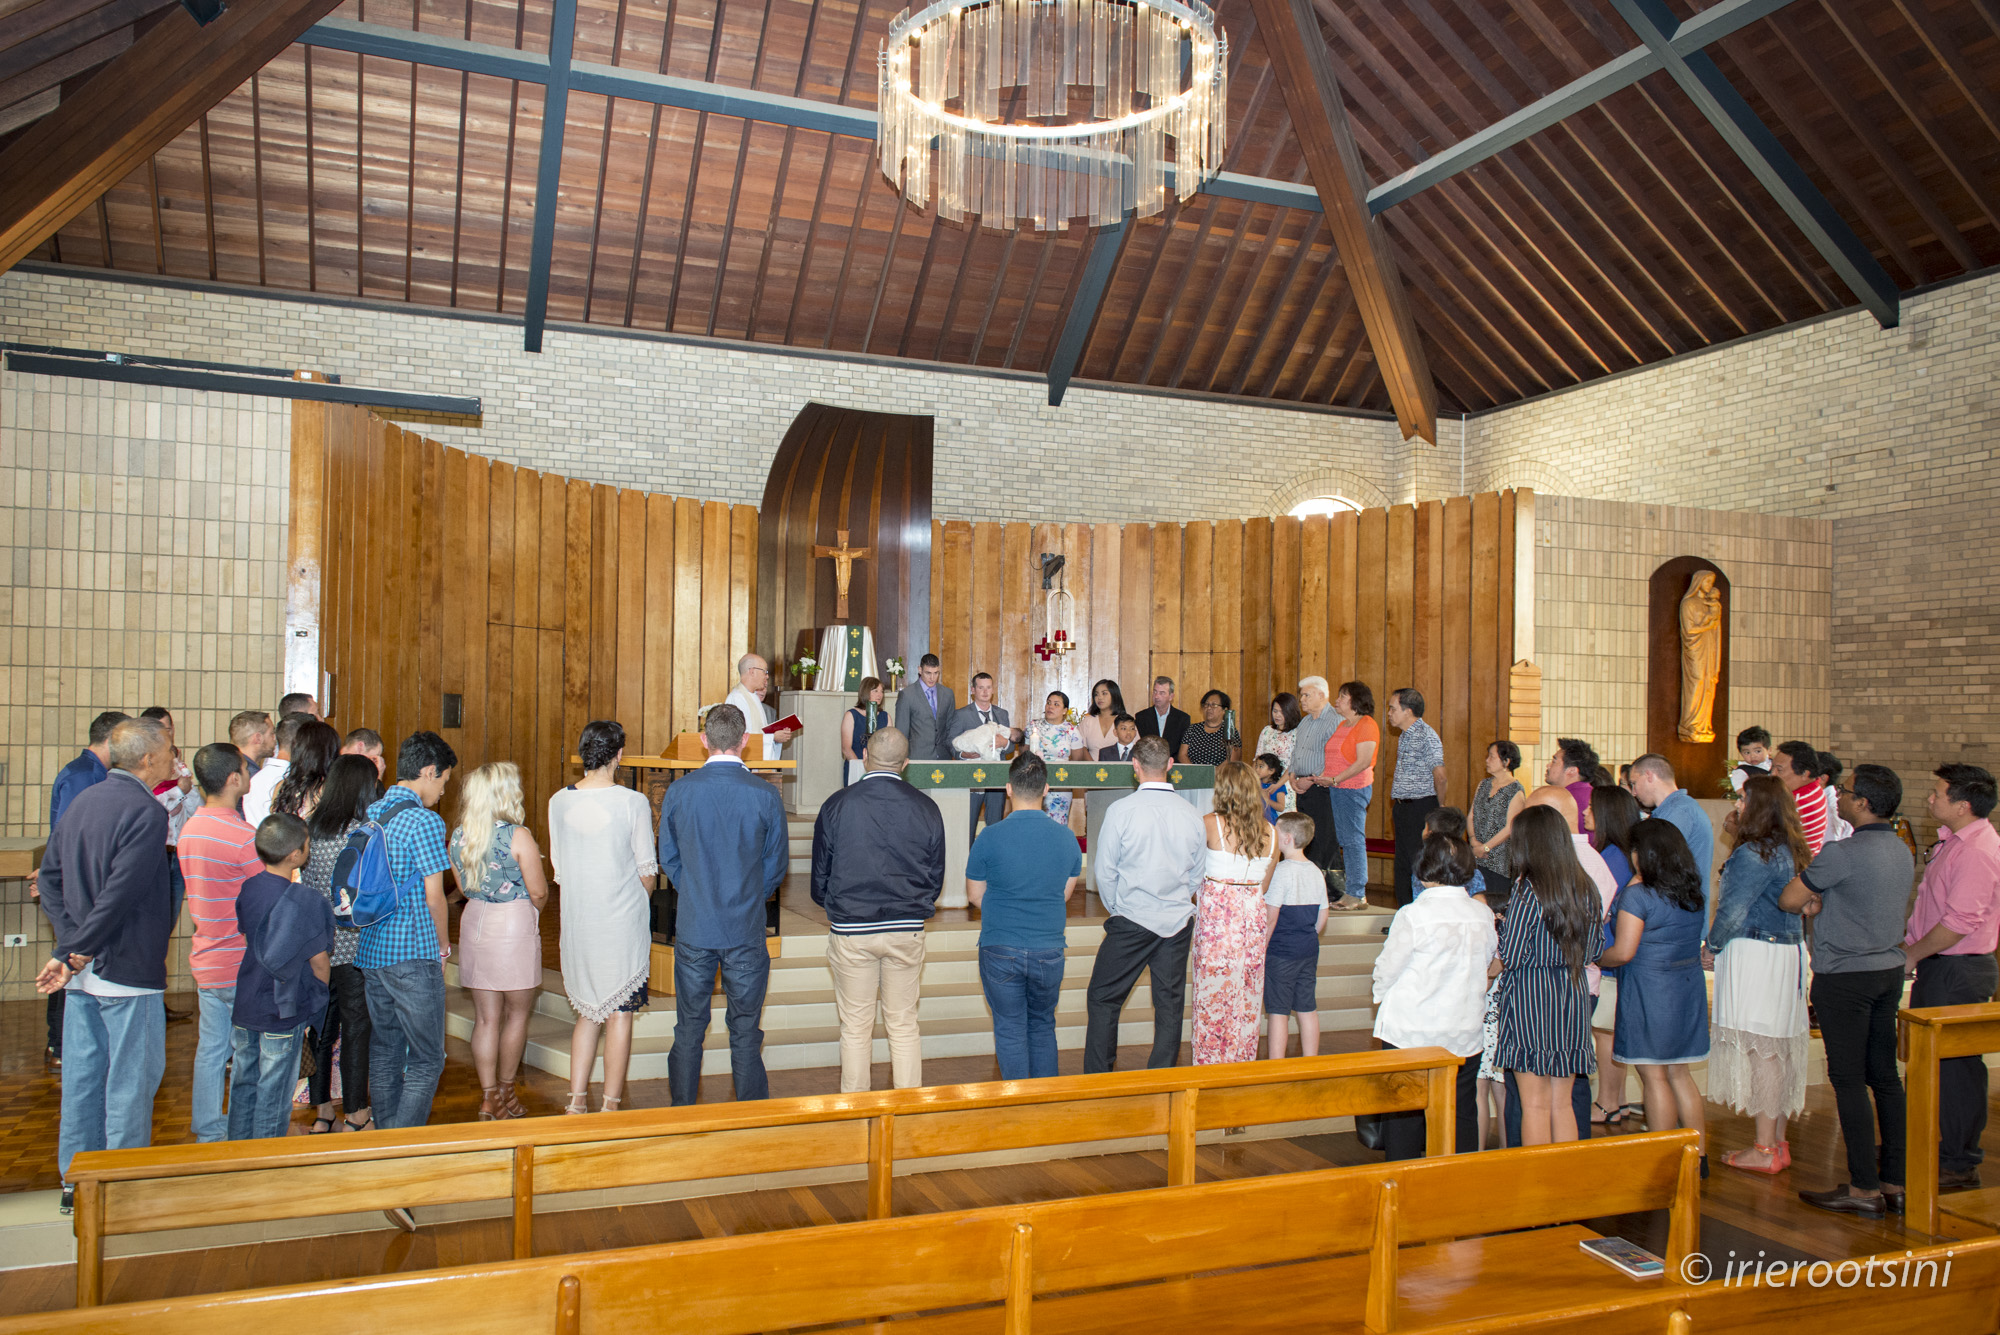 Wide Angle Shot at Our Lady Help of Christians Parish Church